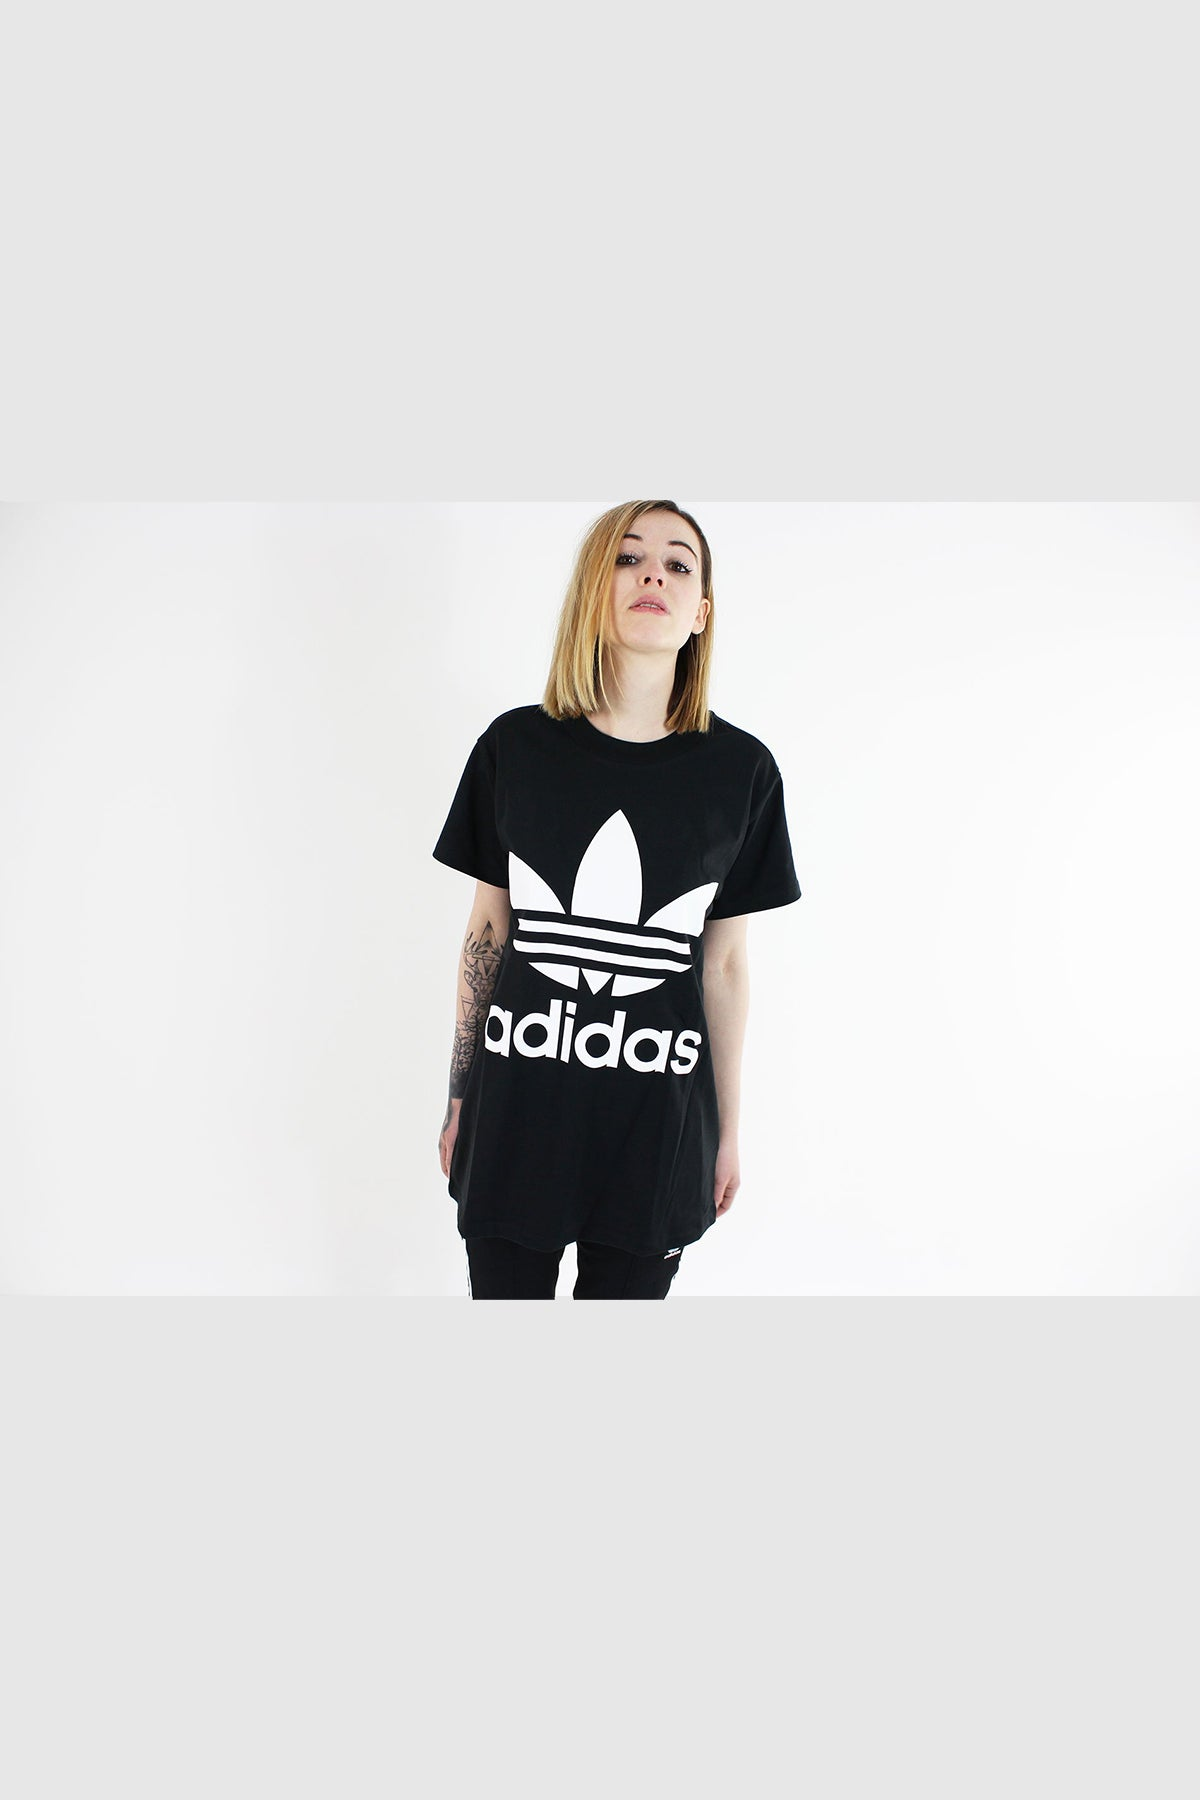 Adidas - T - Shirt Short Sleeve with Bigh Trefoil Women (Black) CE2436